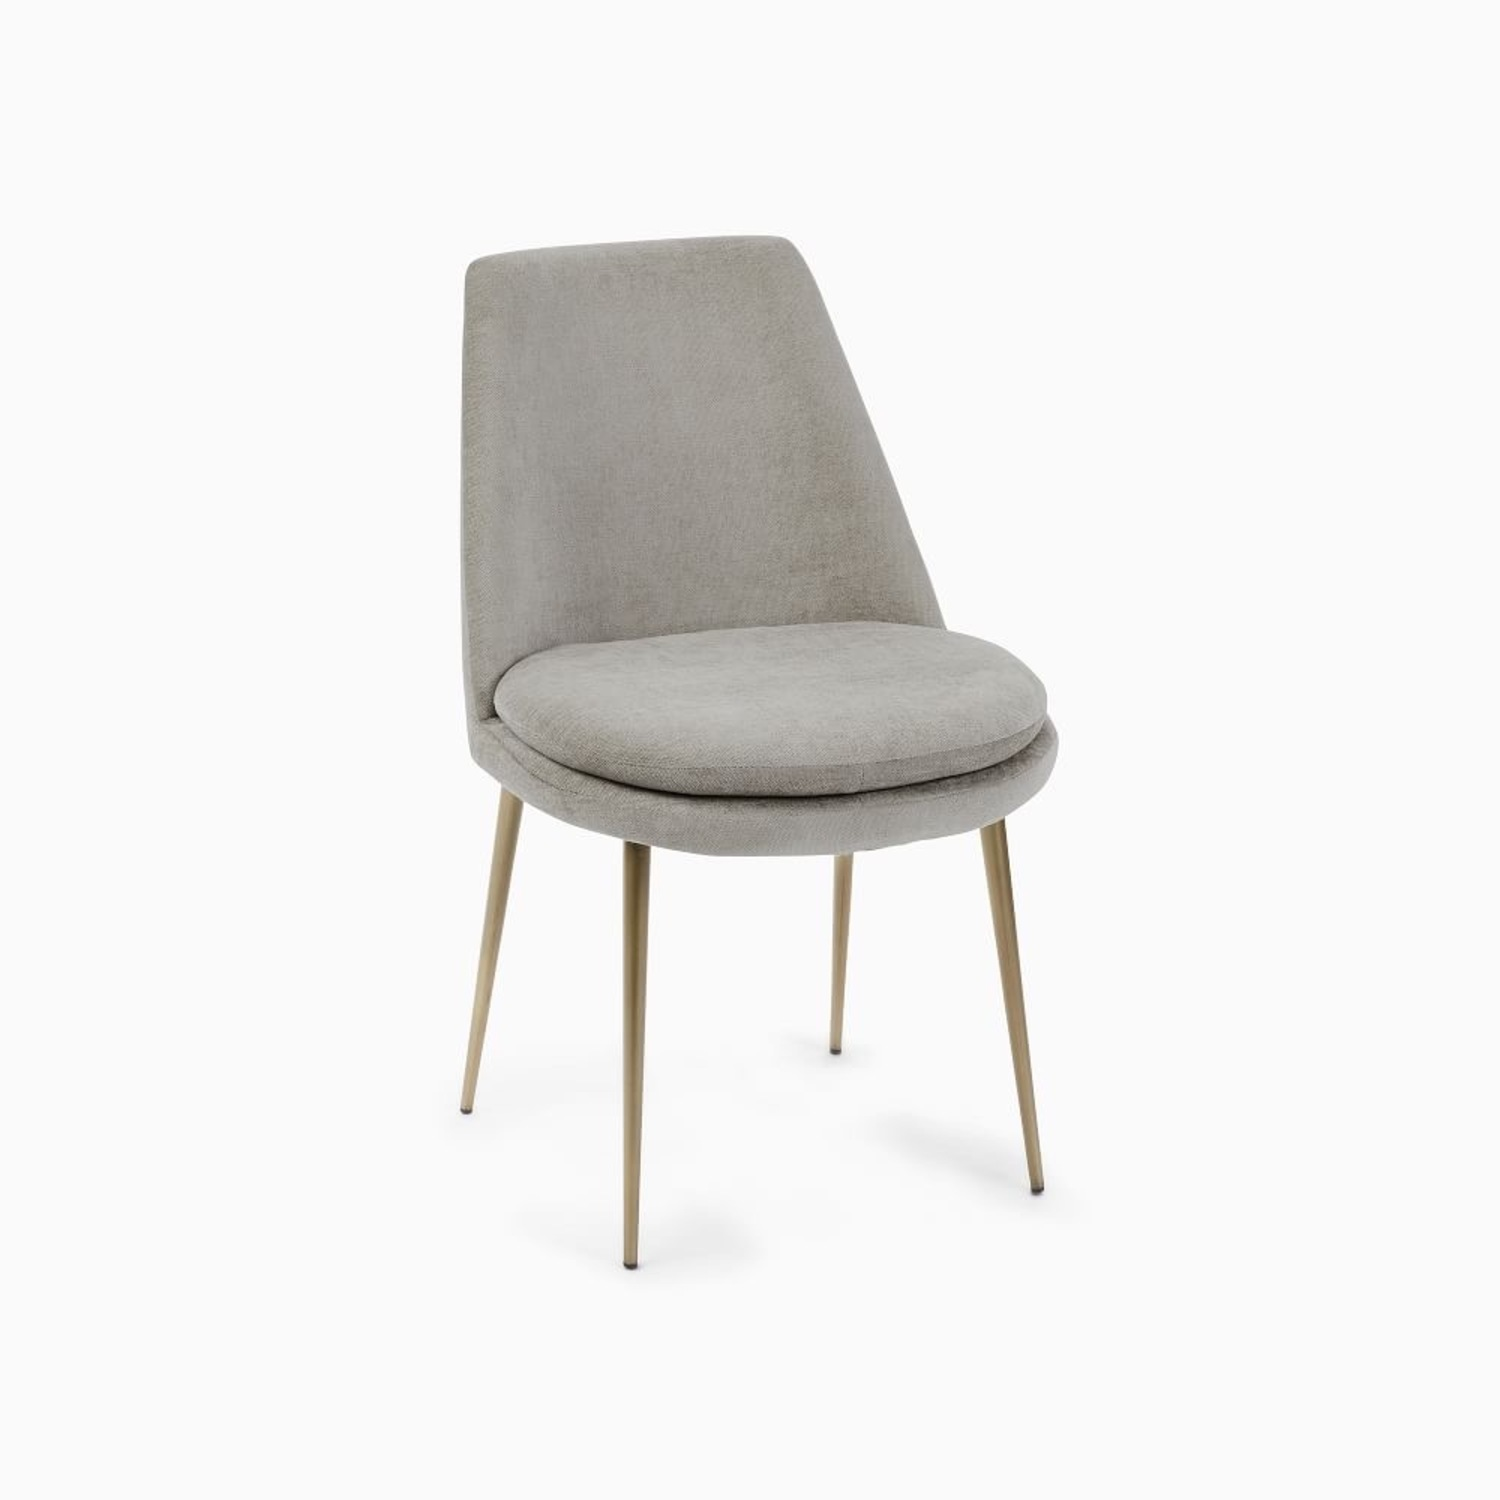 West Elm Finley Dining Chair - image-1